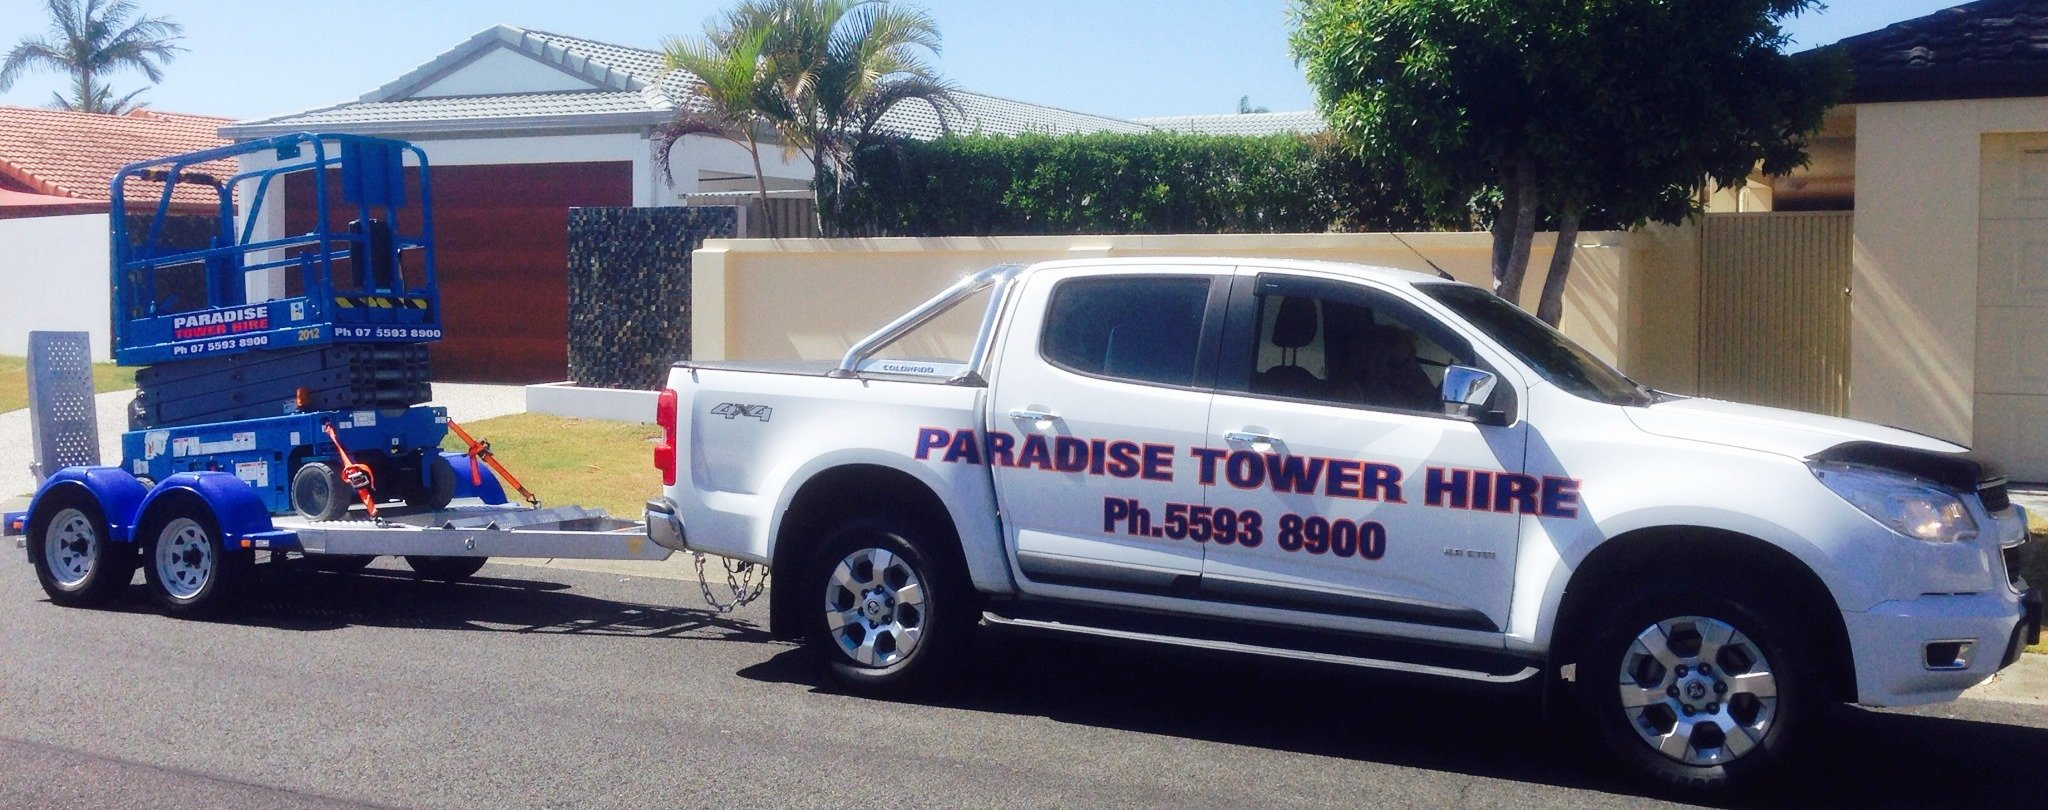 Experts and high quality scissor lifts and cherry picker hire prodivers in Gold Coast